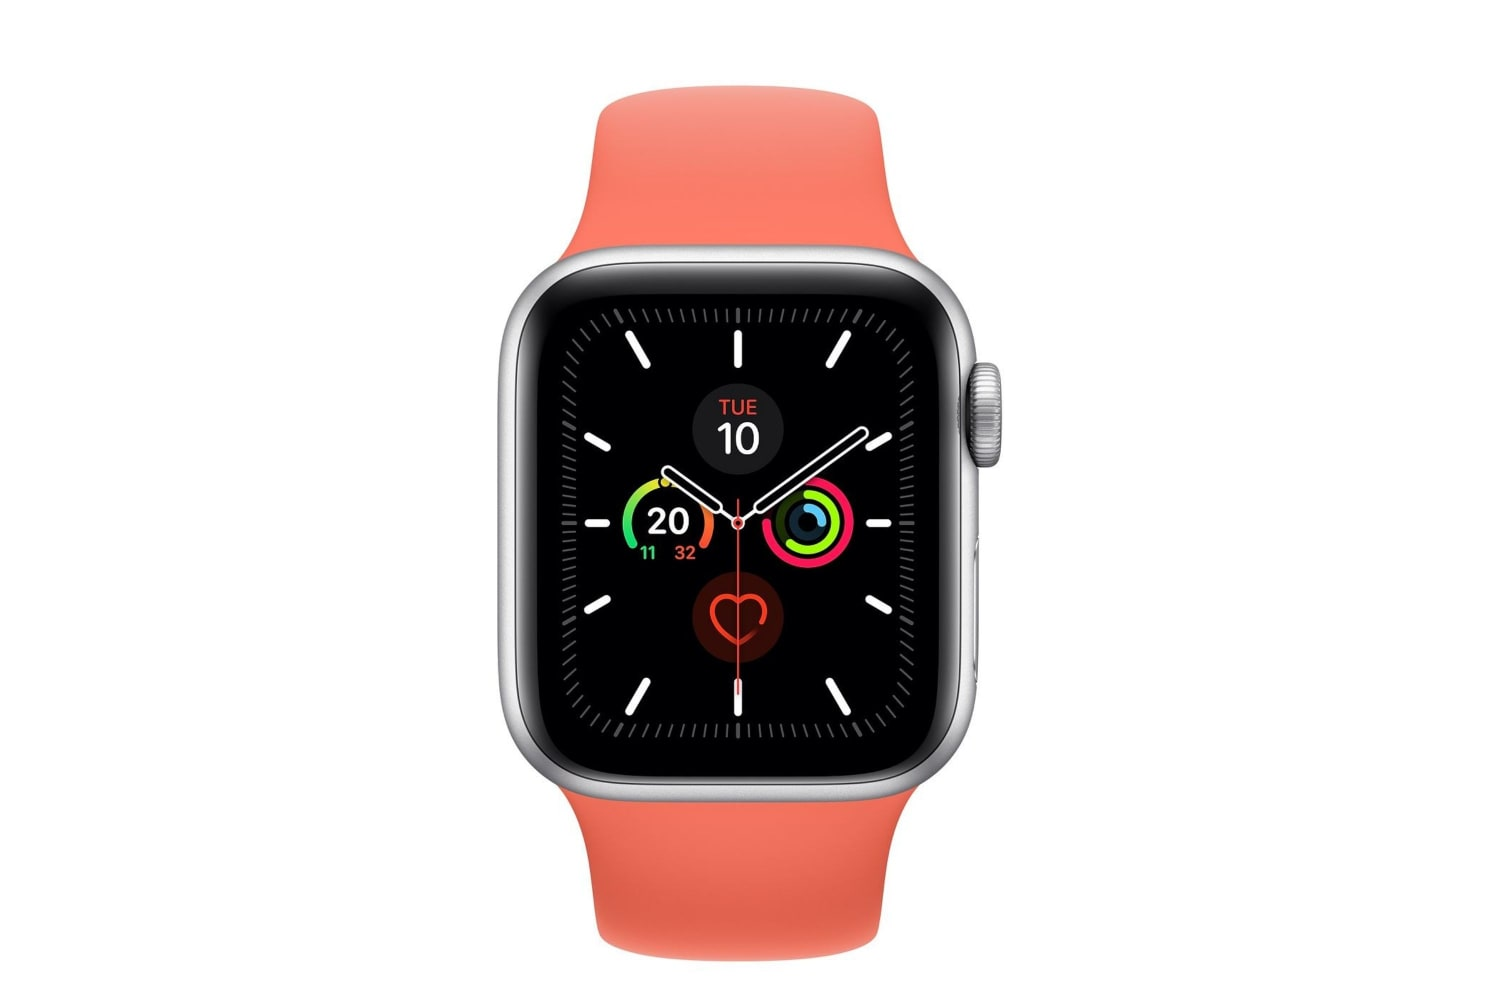 apple-leaker-the-apple-watch-series-6-and-new-ipad-air-will-launch-soon-20200908-1